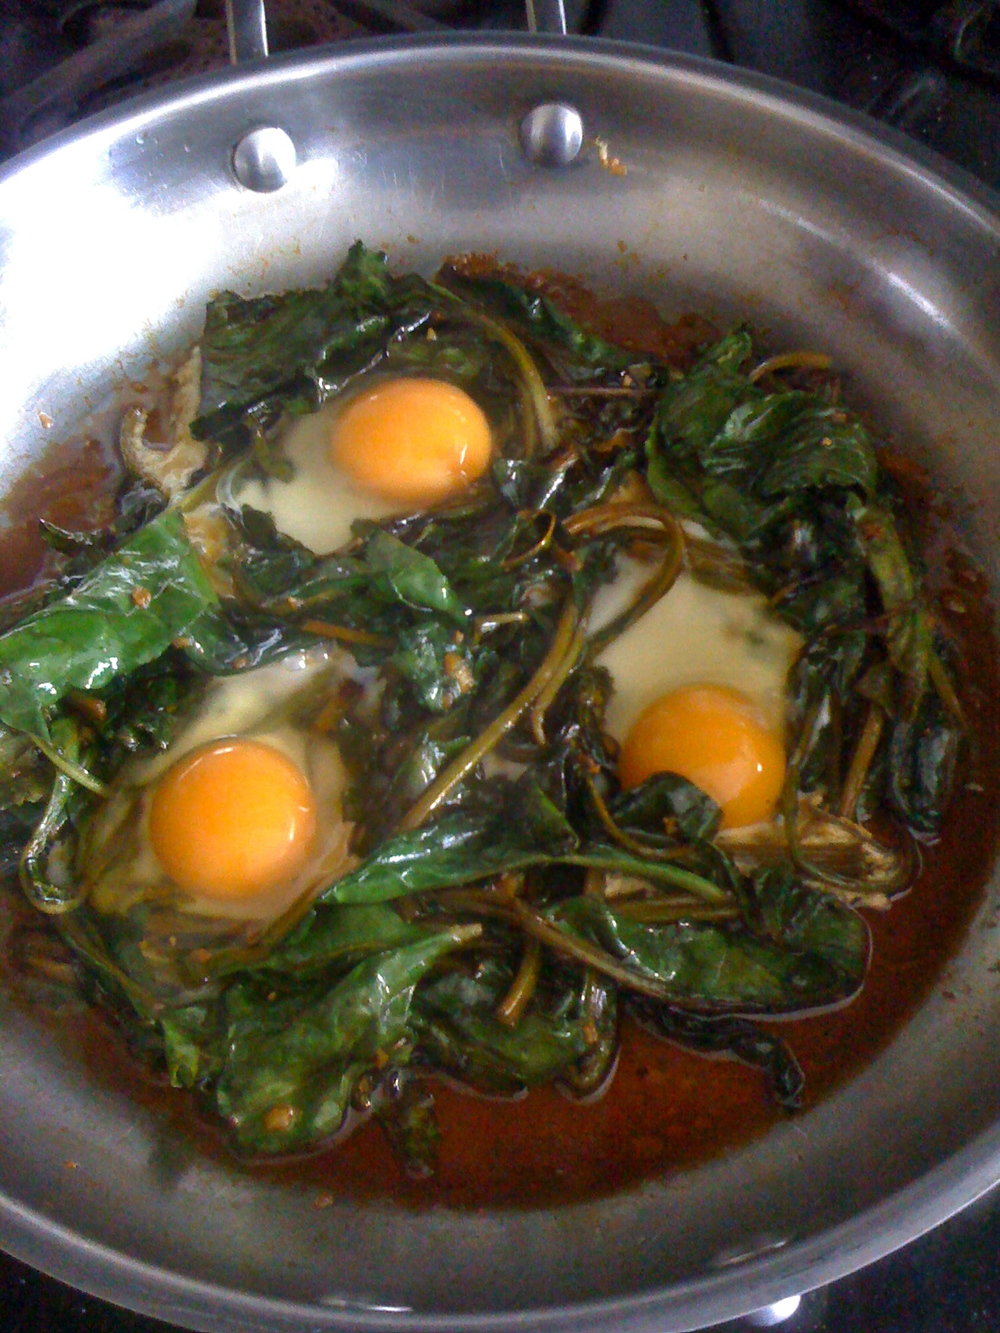 Sunny-side eggs in sauteed greens